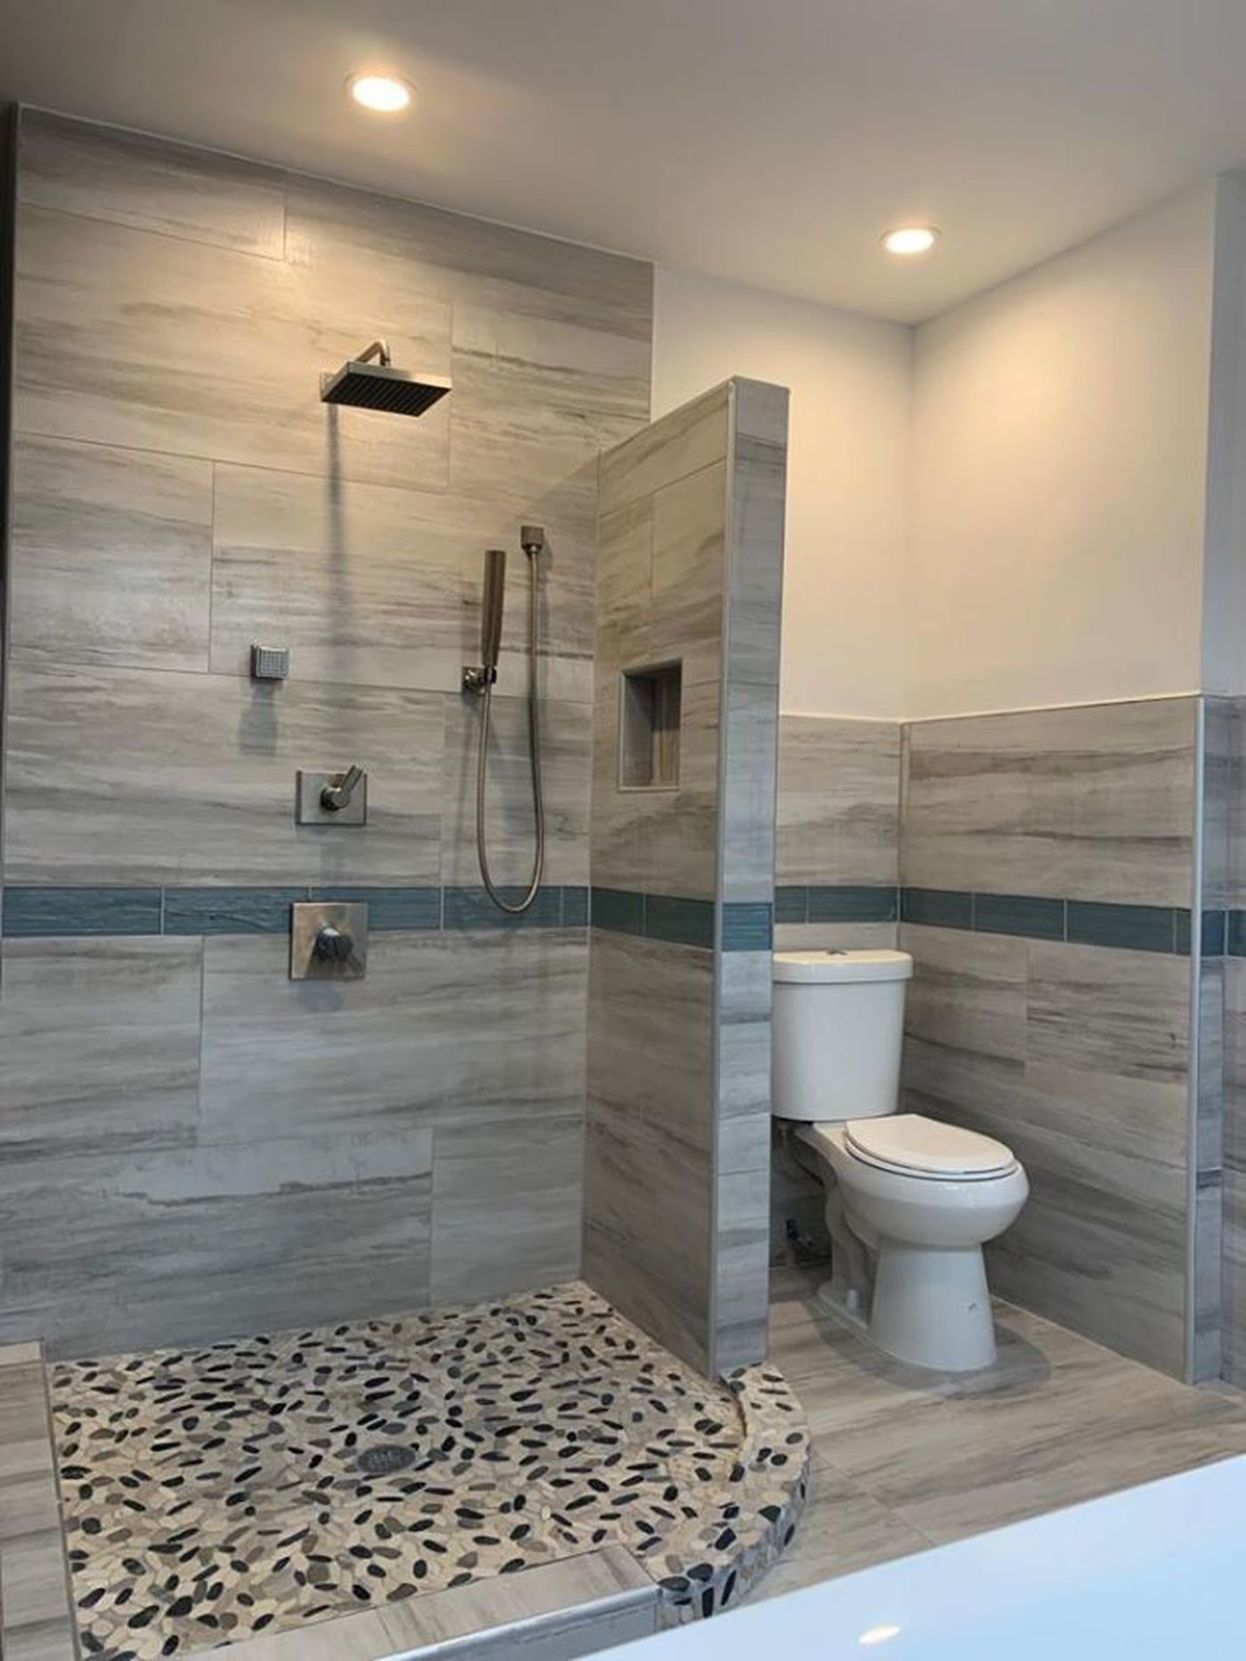 A Bathroom Without Doors A West Philly Apartment Tests The